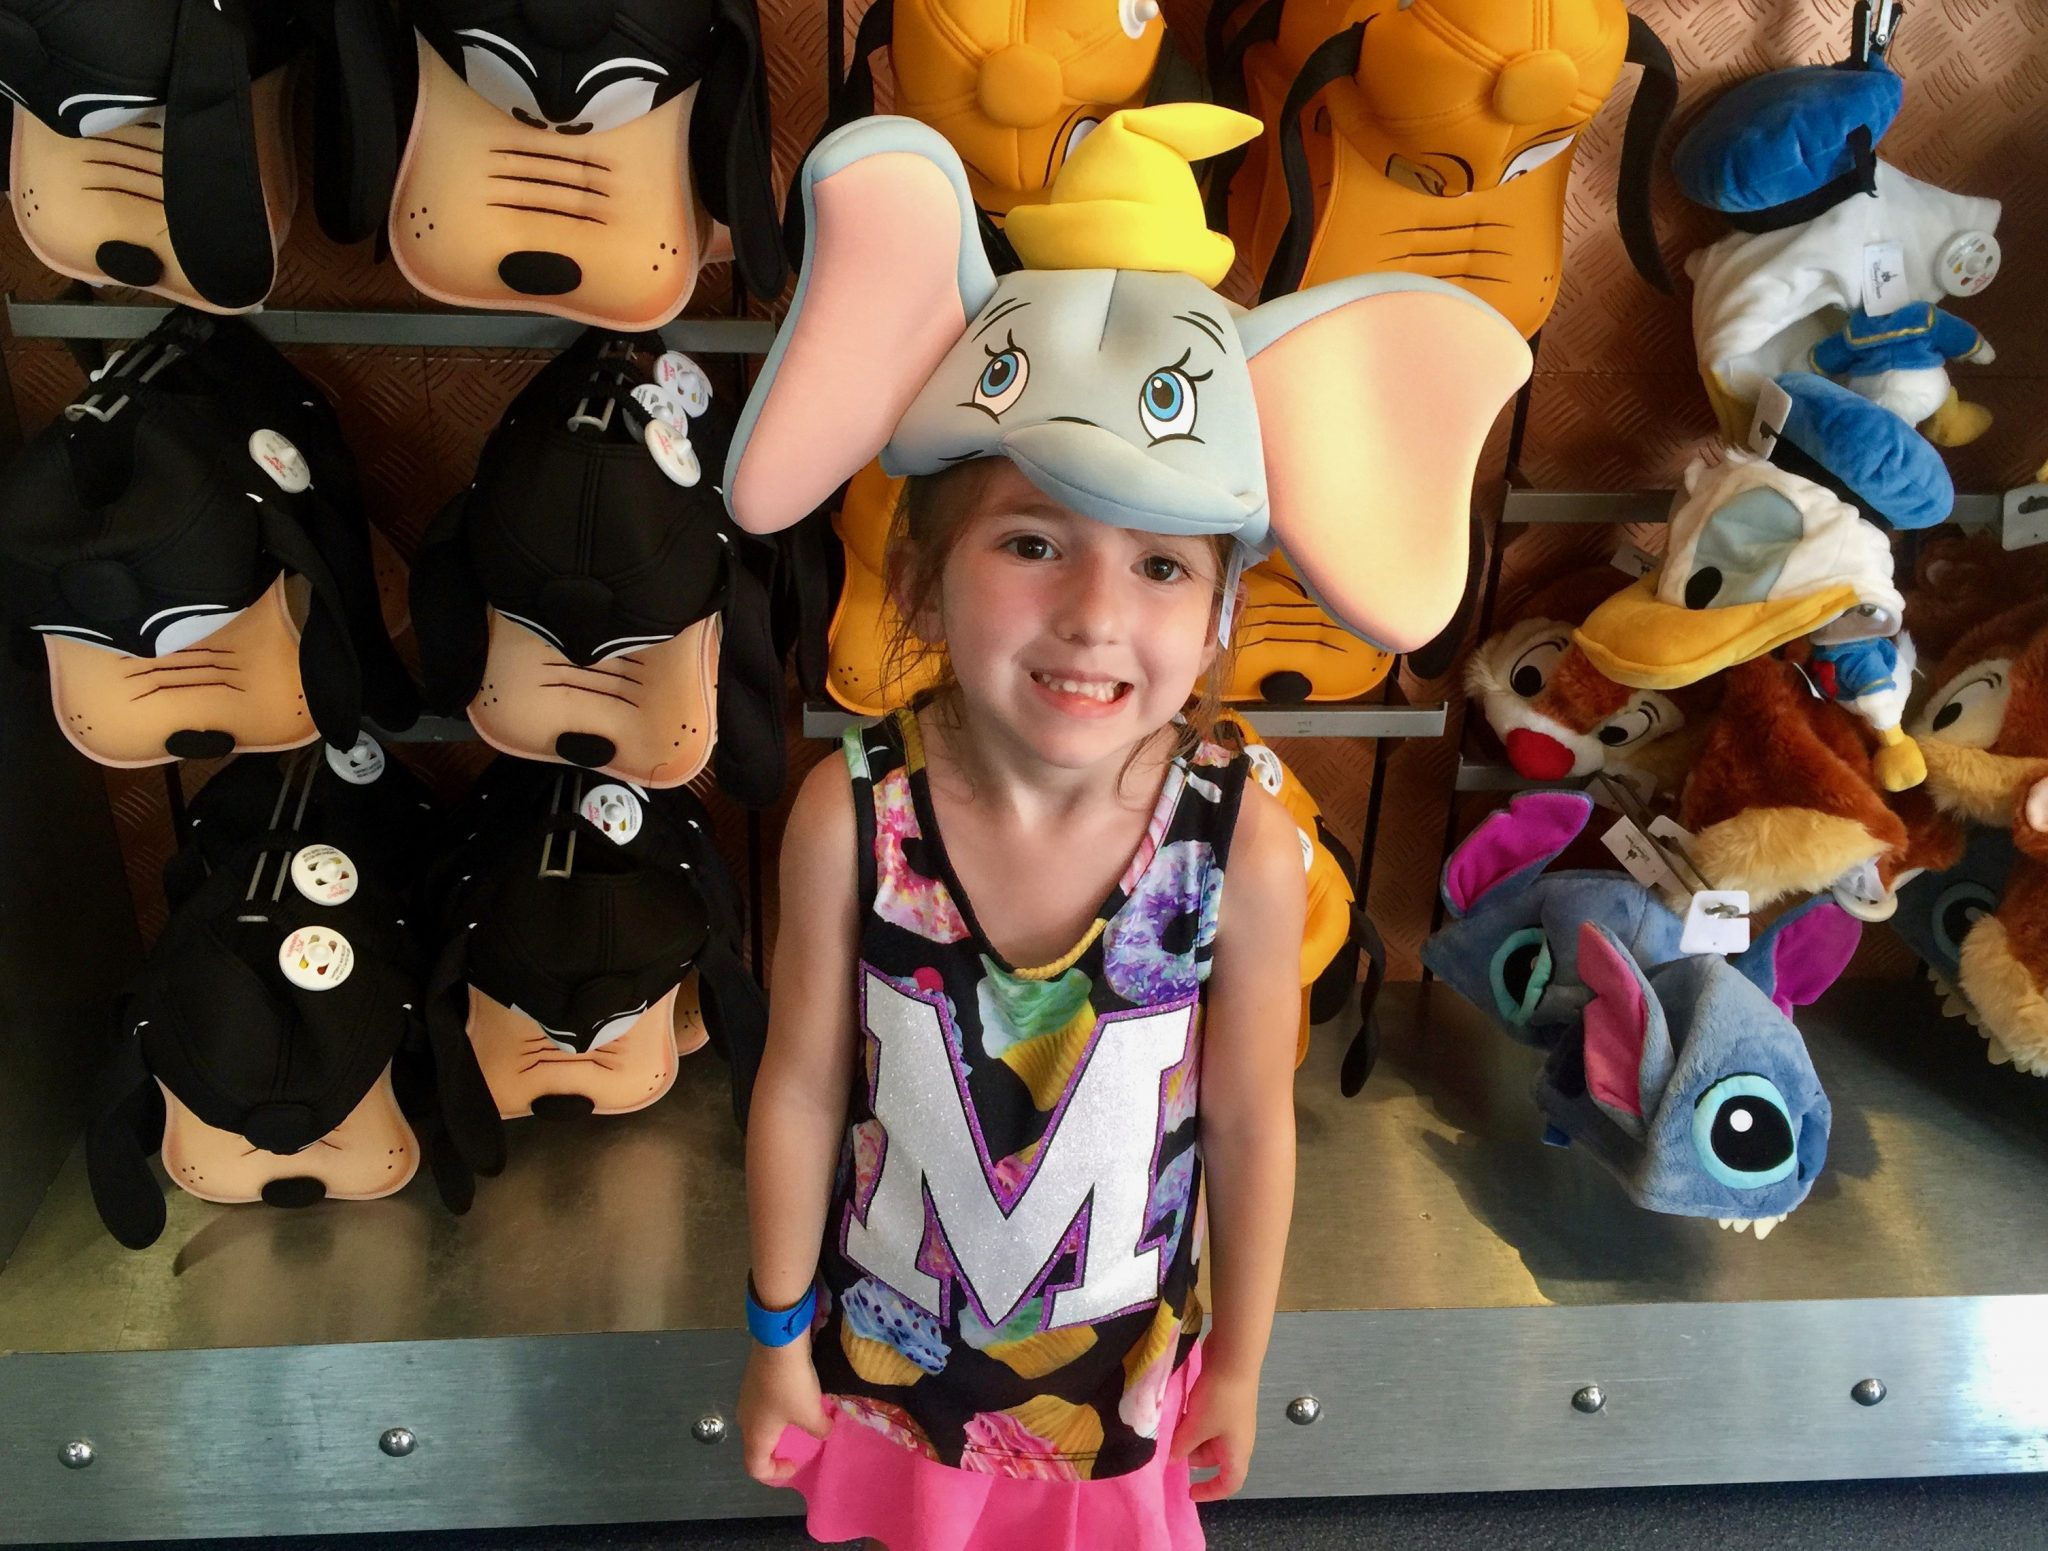 Modeling Dumbo Ears at Disney World